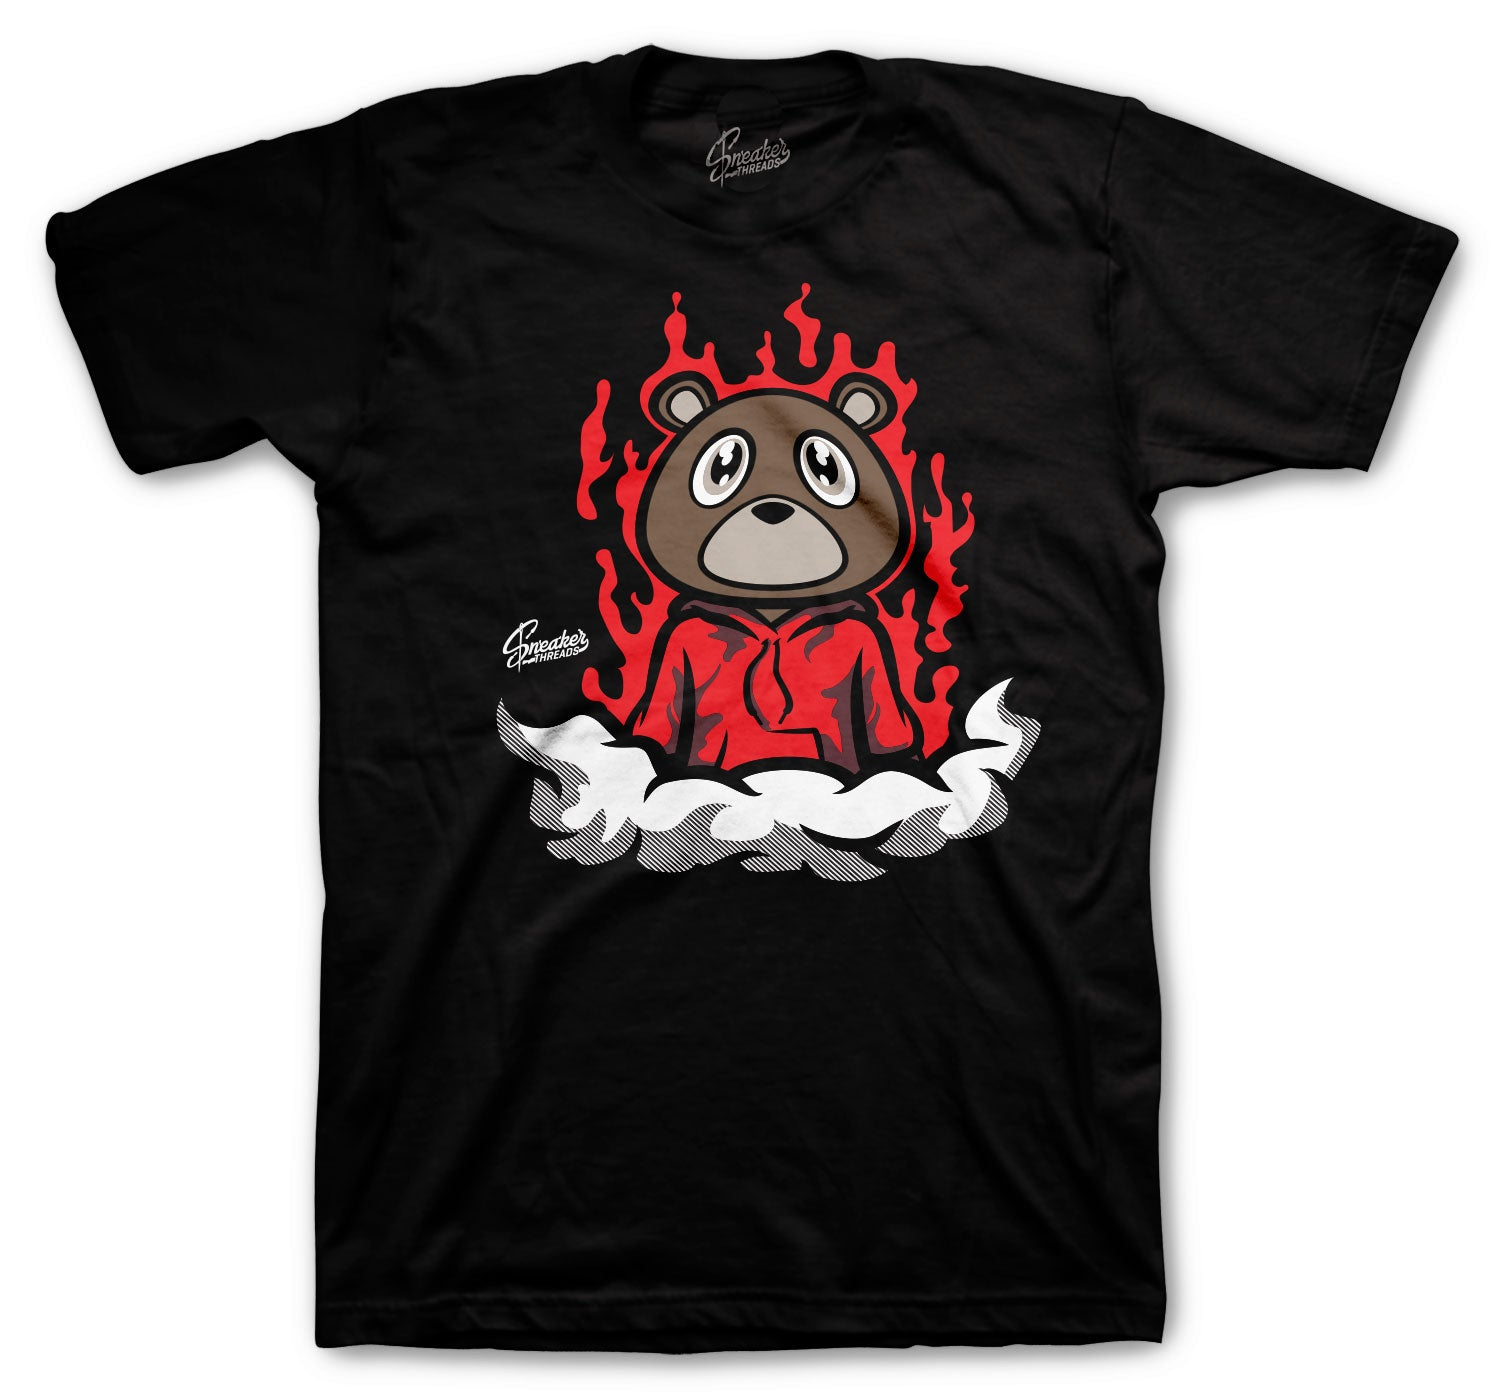 Yeezy 350 Bred Fresh Bear Shirt